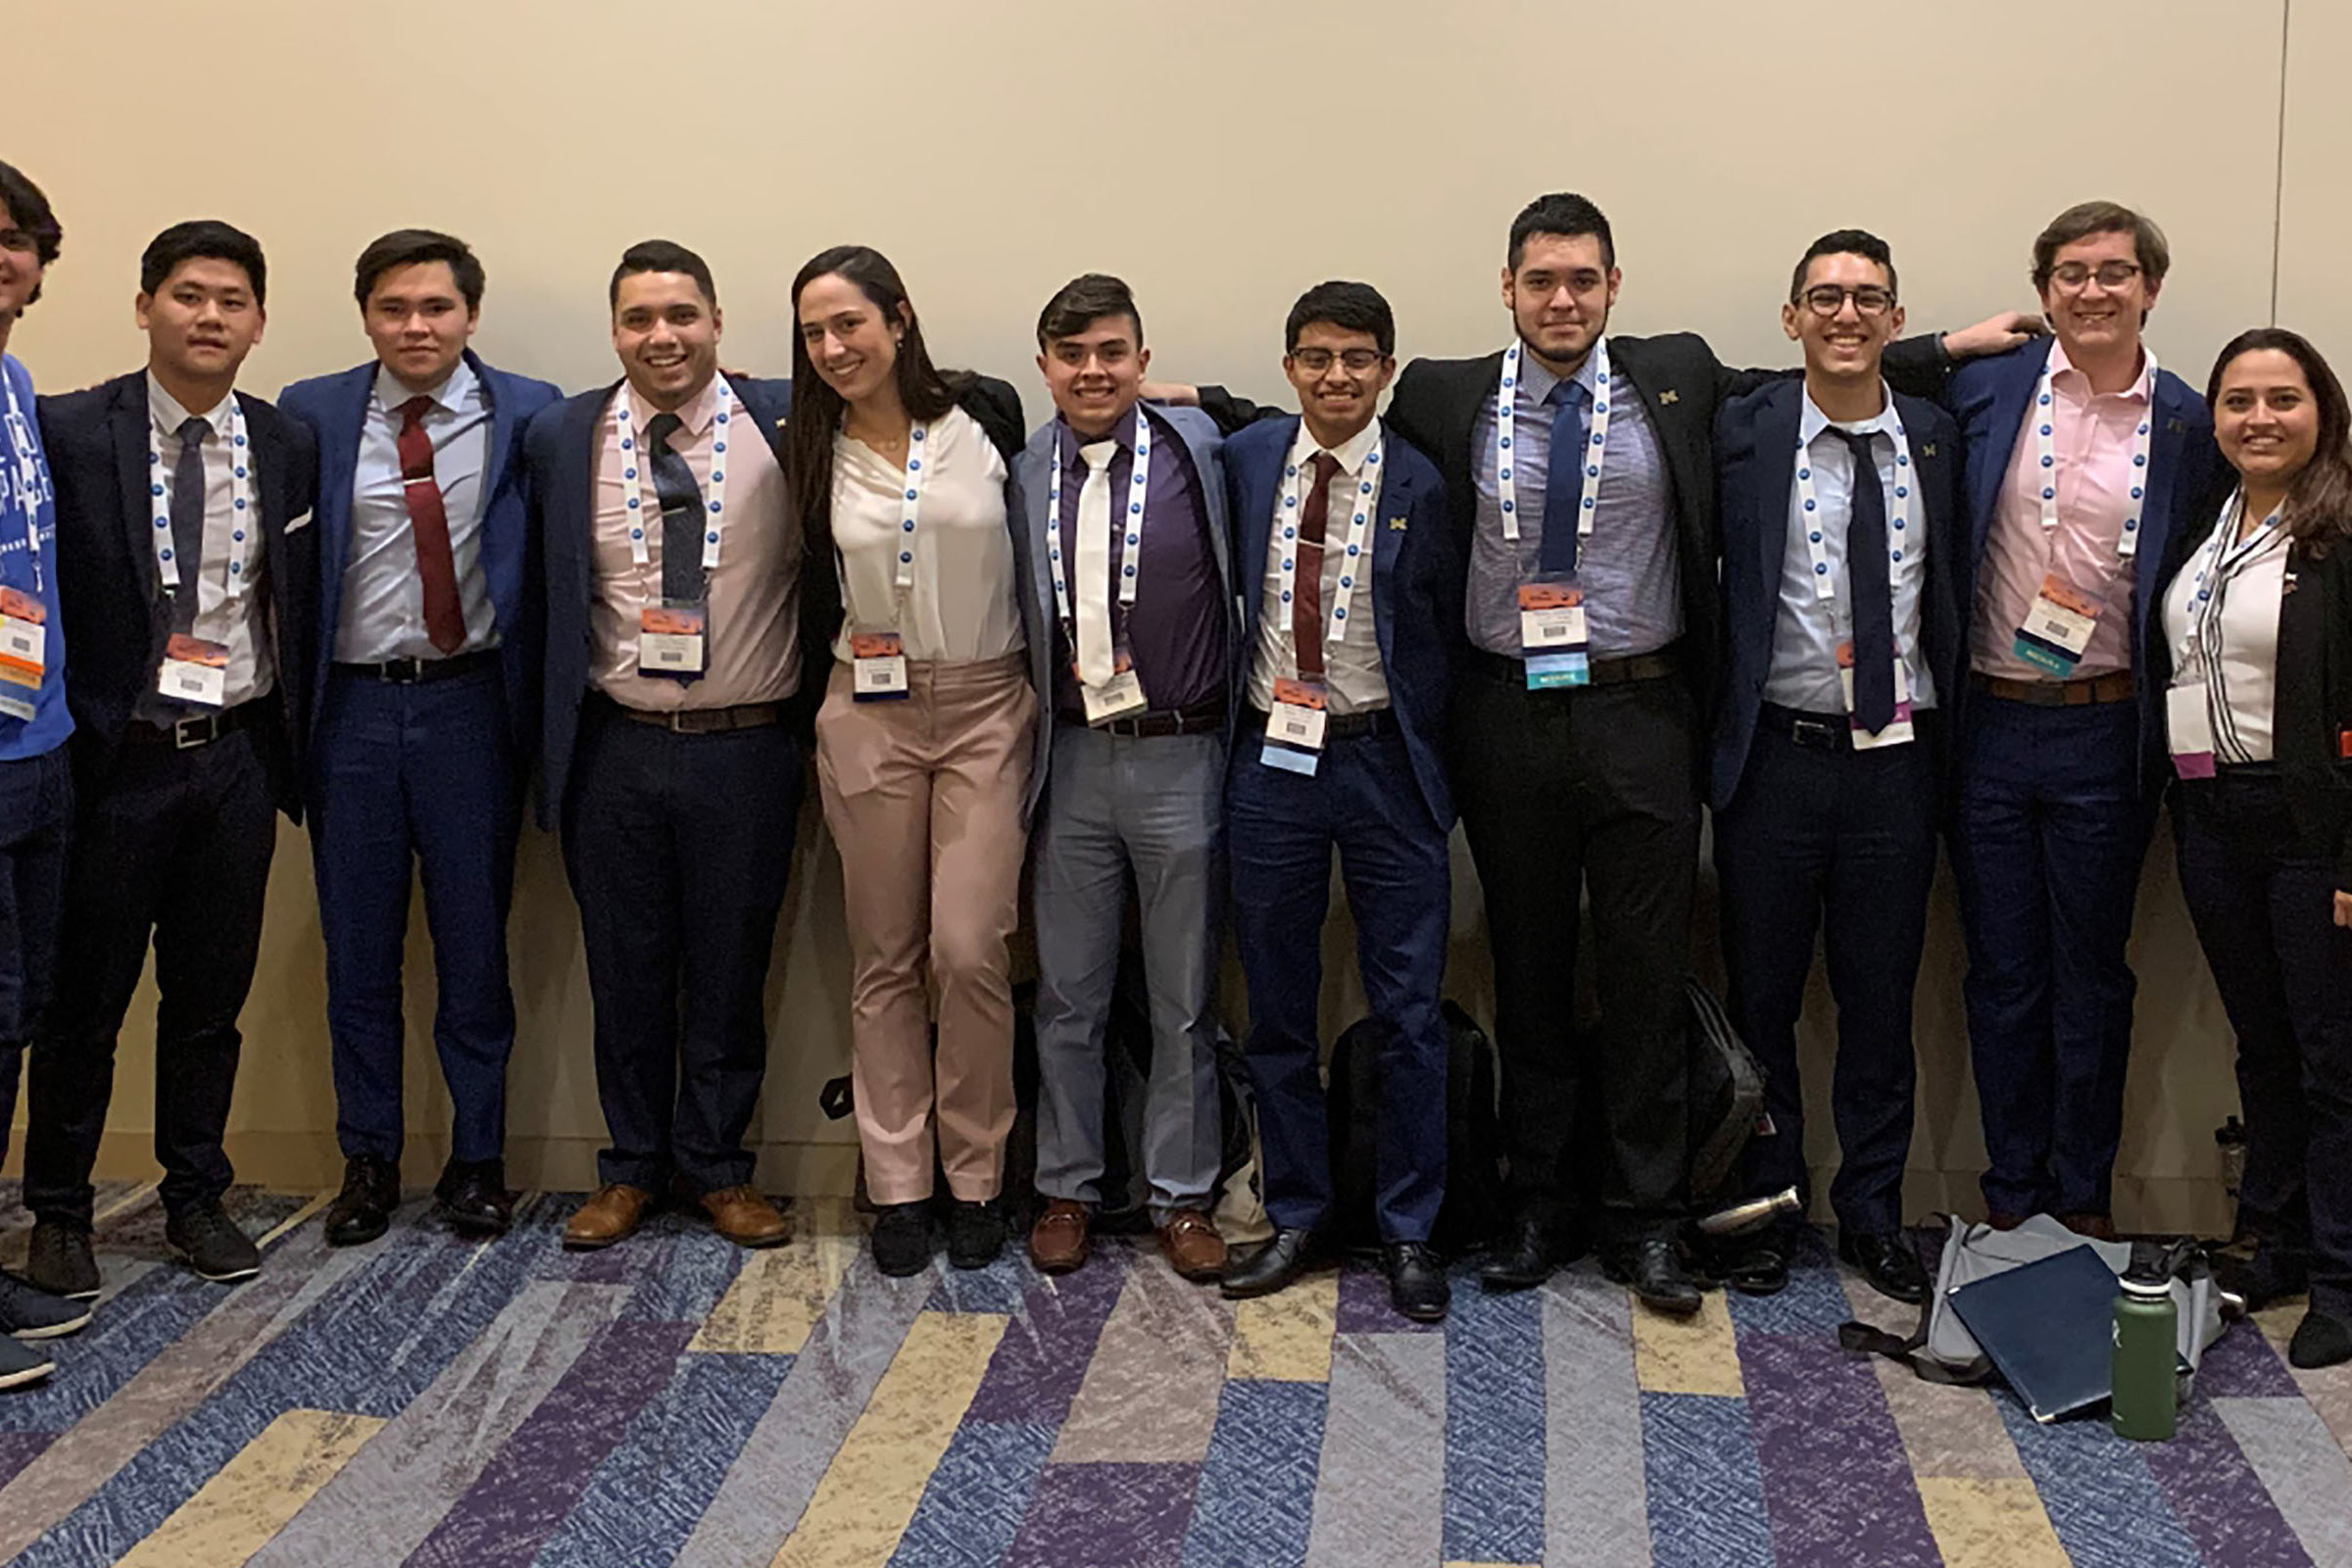 Group photo of SHPE members at National Convention 2019.